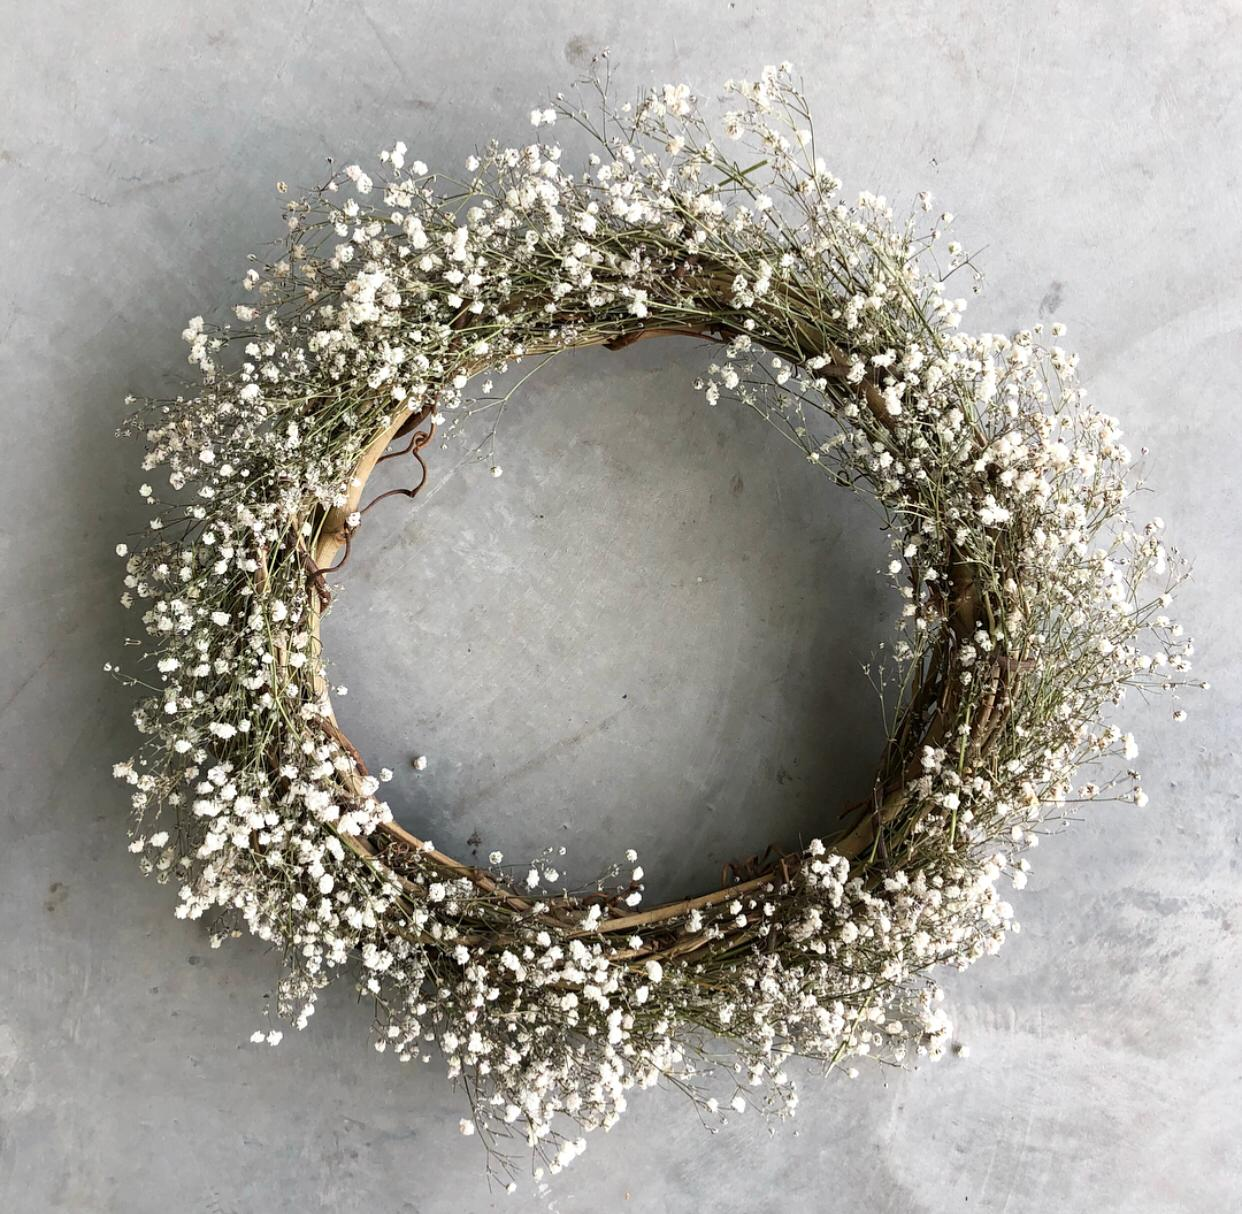 Wreath-making classes with Florette